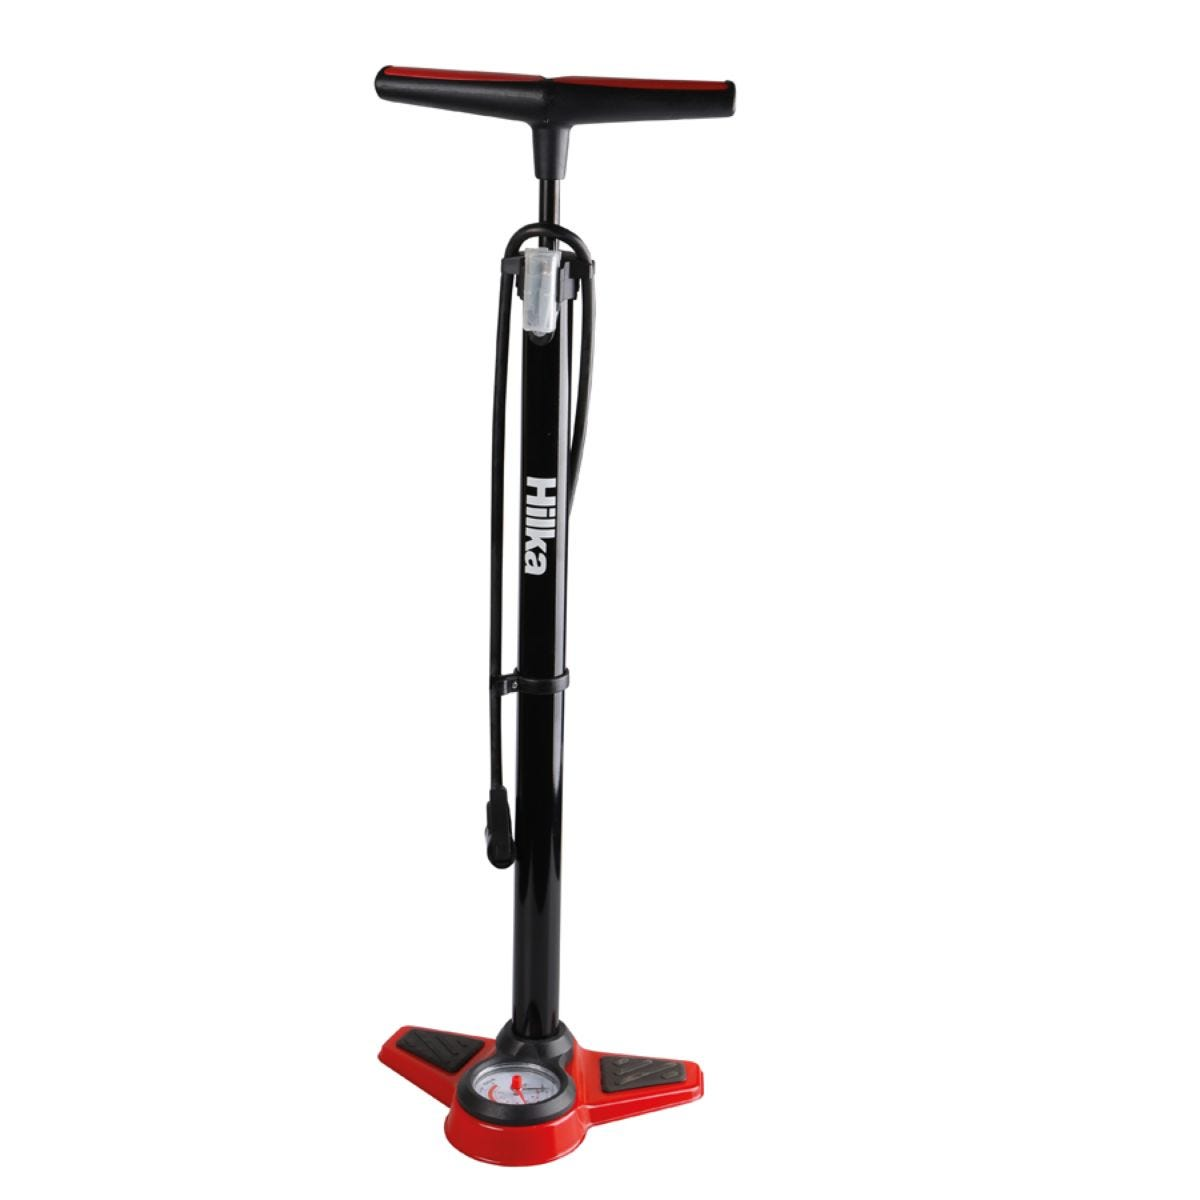 Hilka Cycling Track Pump